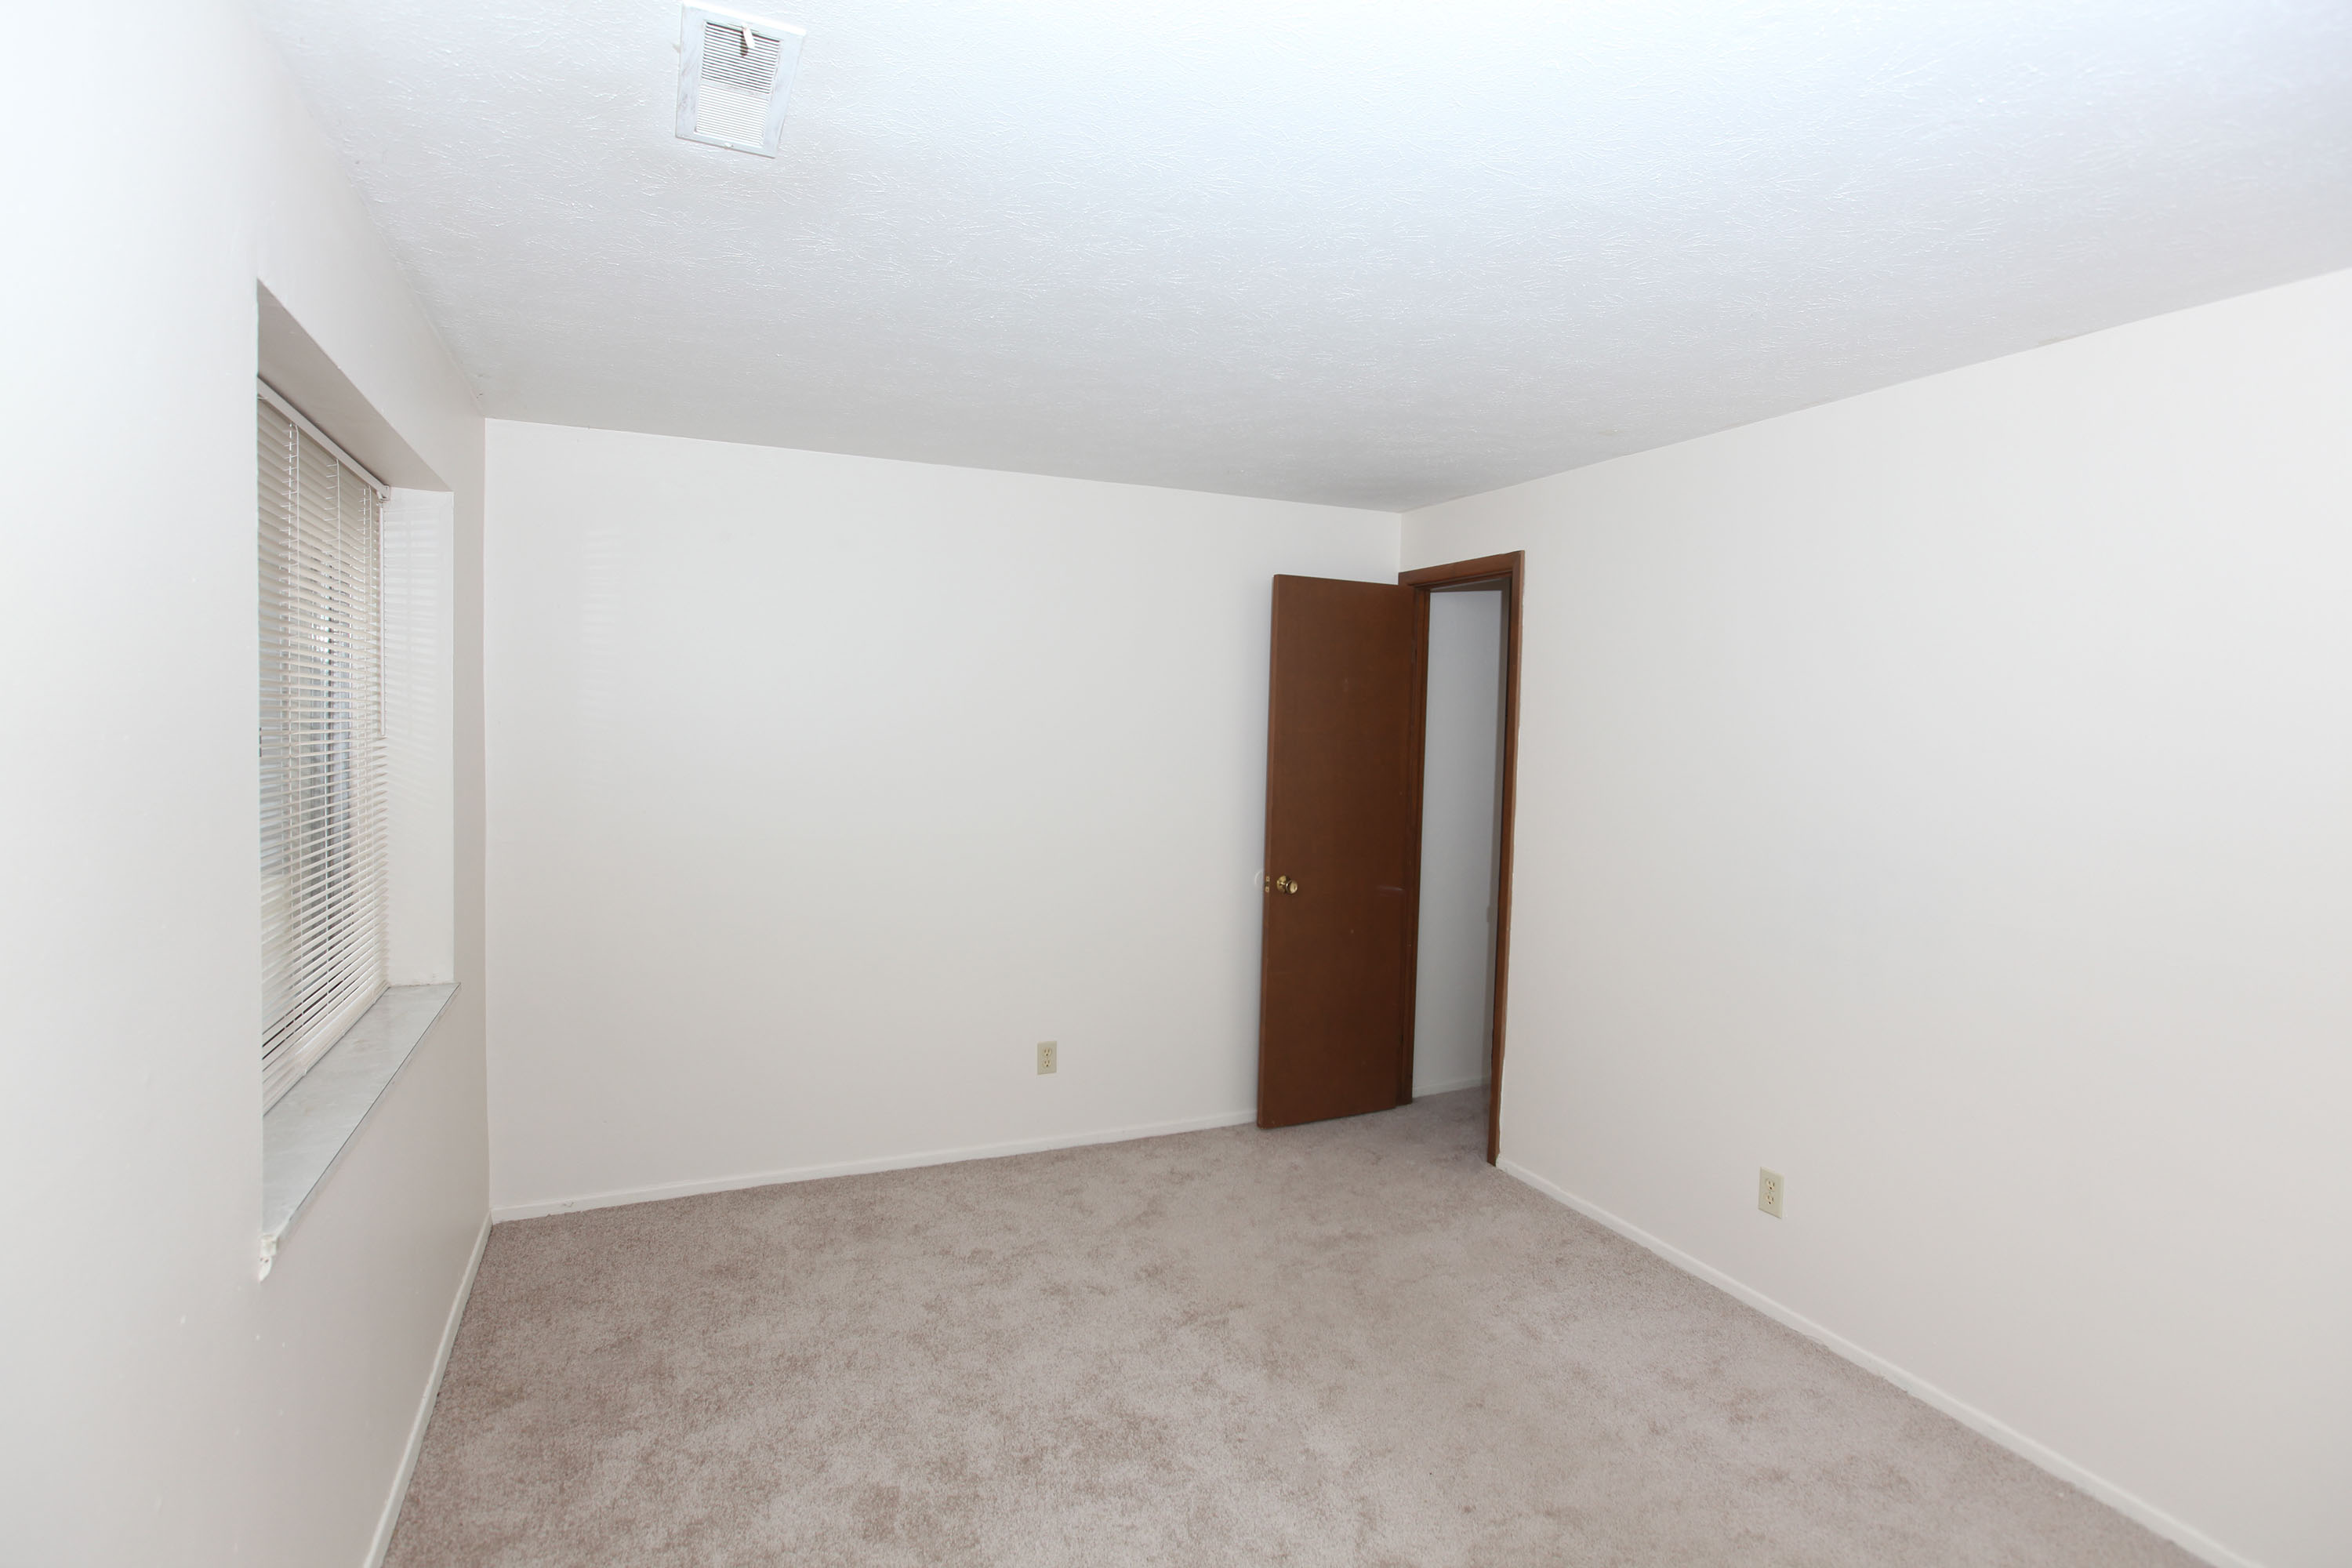 1B Bedroom  at the Greenridge on Euclid Apartments in Euclid, OH